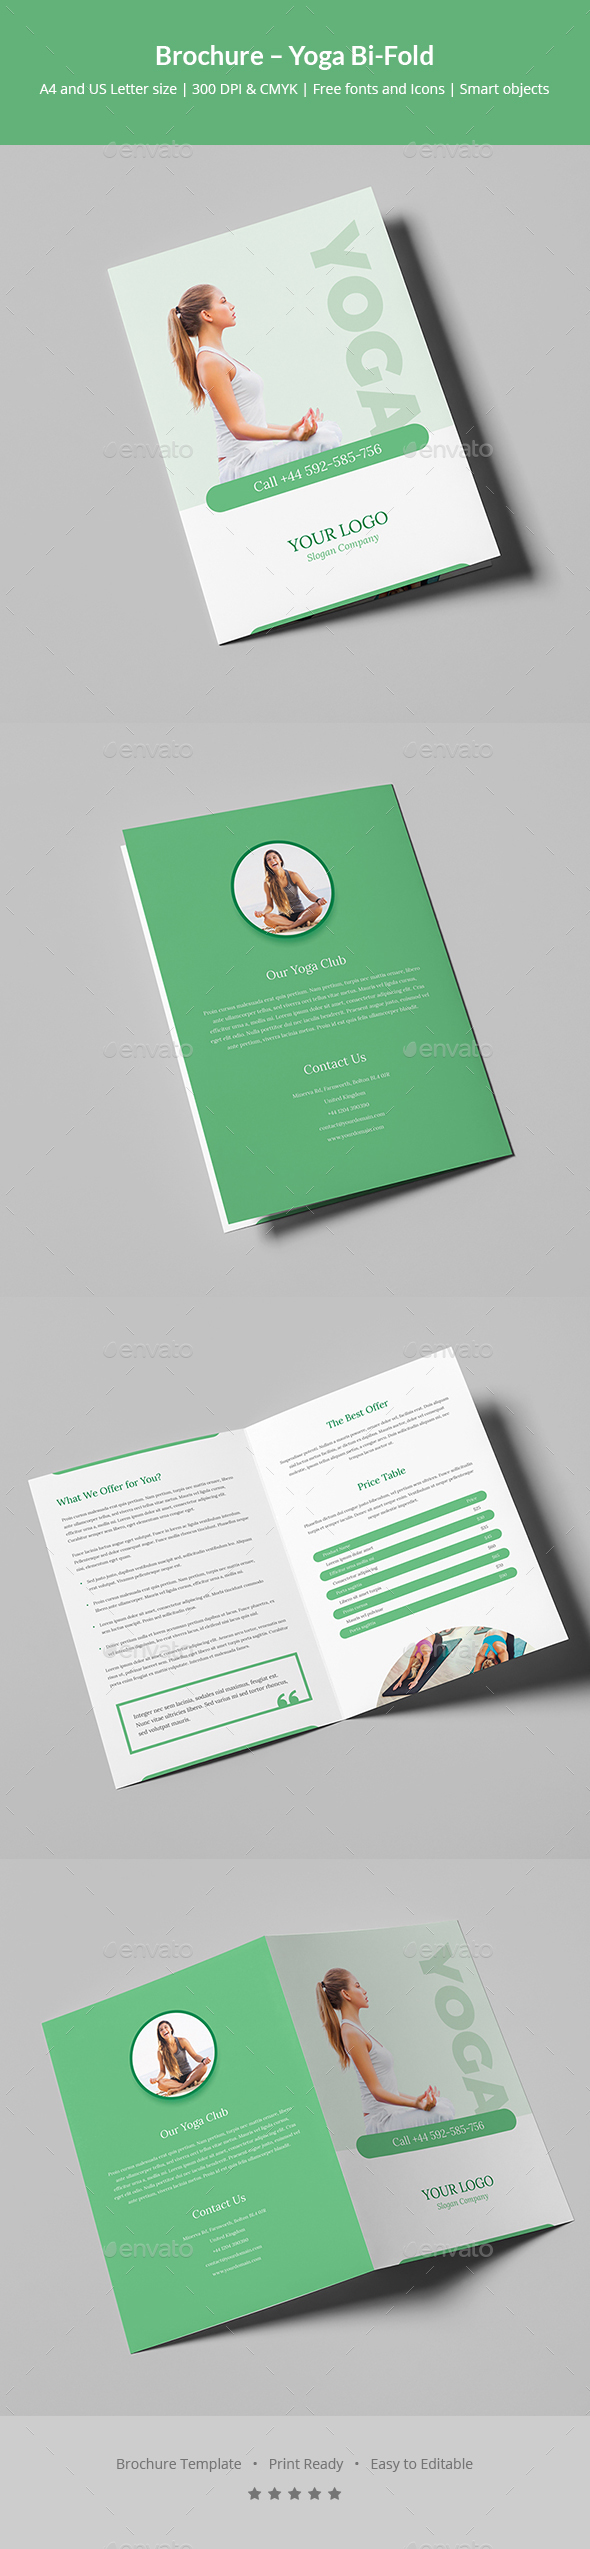 GraphicRiver Brochure Yoga Bi-Fold 20953895